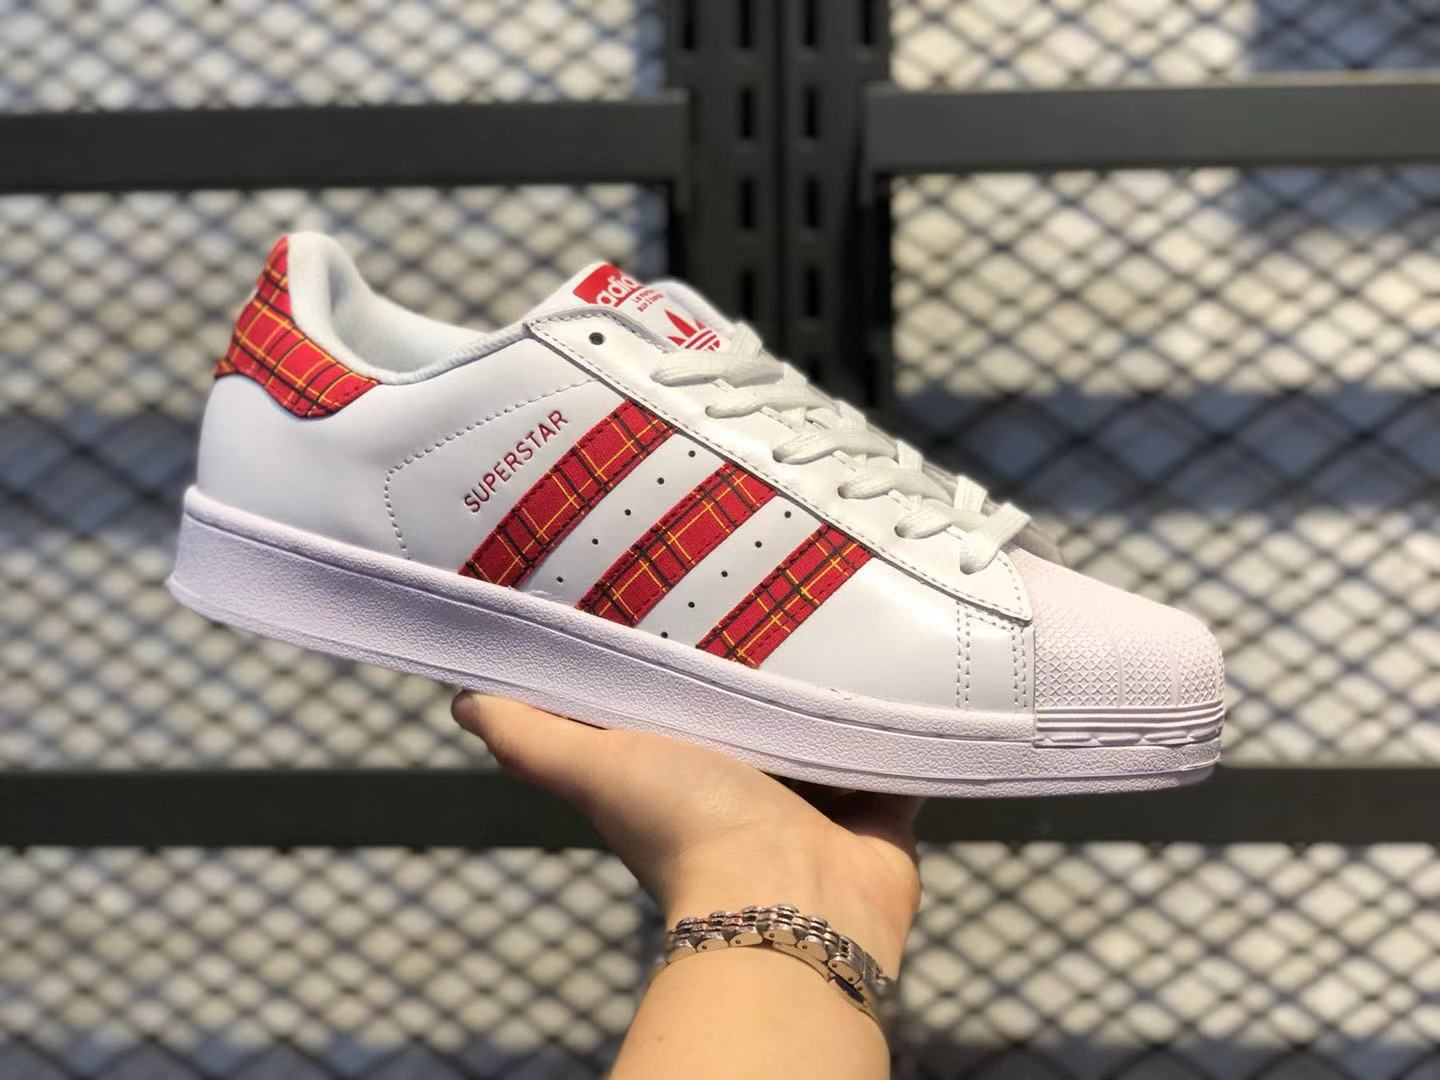 2020 New Arrival Adidas Superstar Cloud White/Scarlet-Collegiate Green FU7446